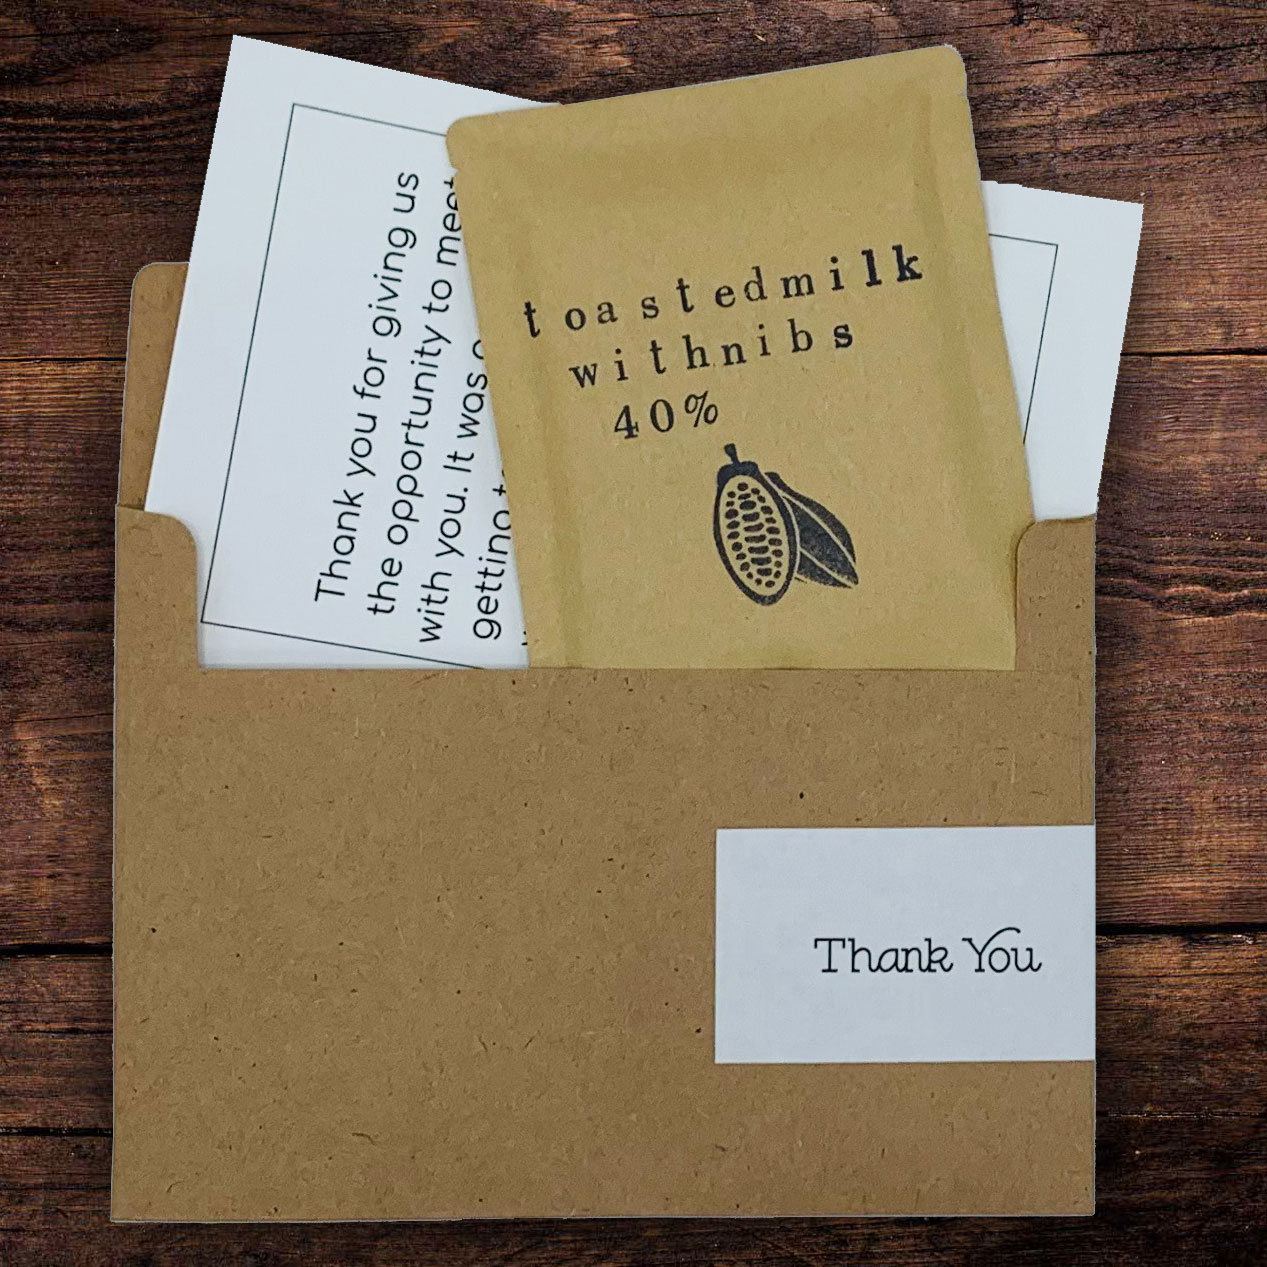 This small gift of chocolate is the perfect treat to send as a Thank You.  Paired with a personalize